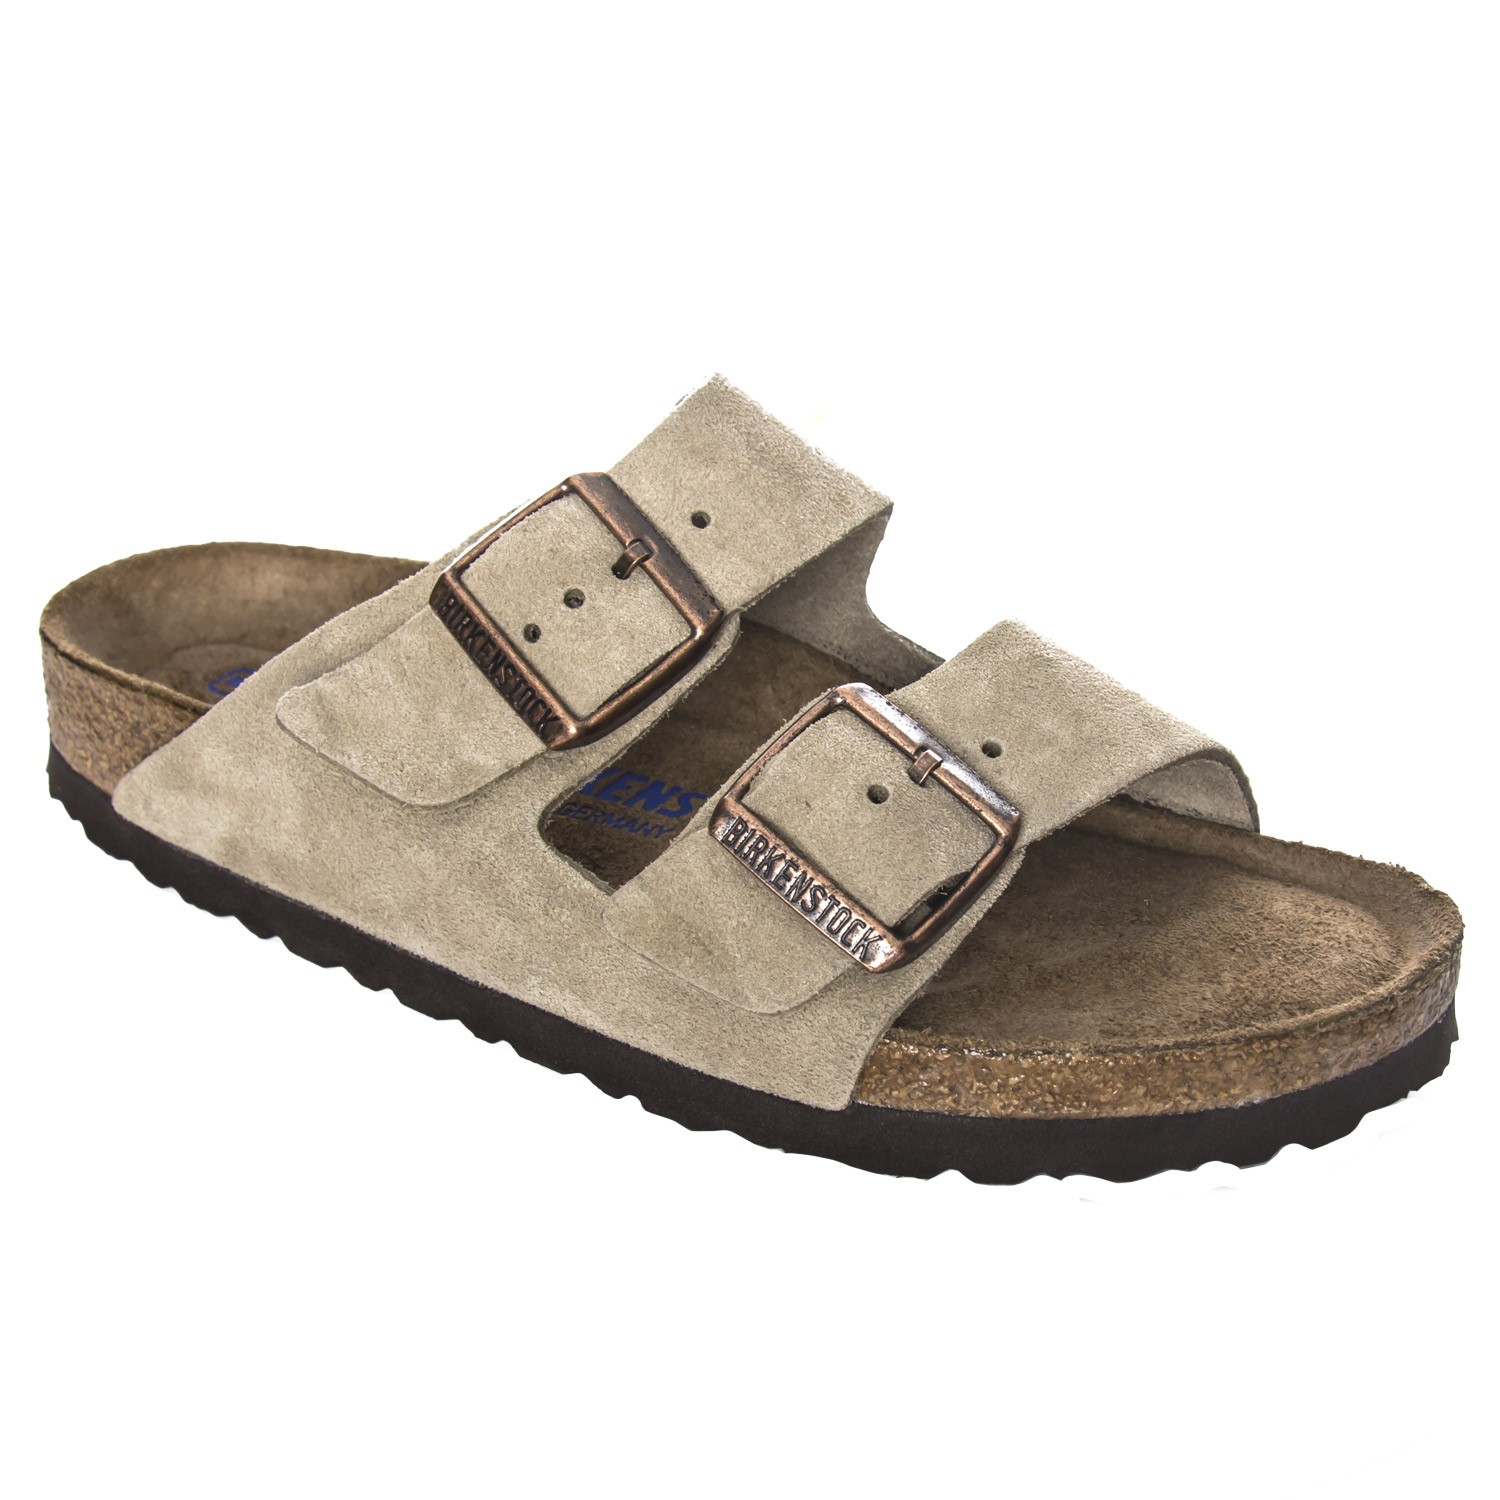 38a3a88a0758 Birkenstock Arizona Suede Leather Soft Footbed - Slippers - Everyday ...